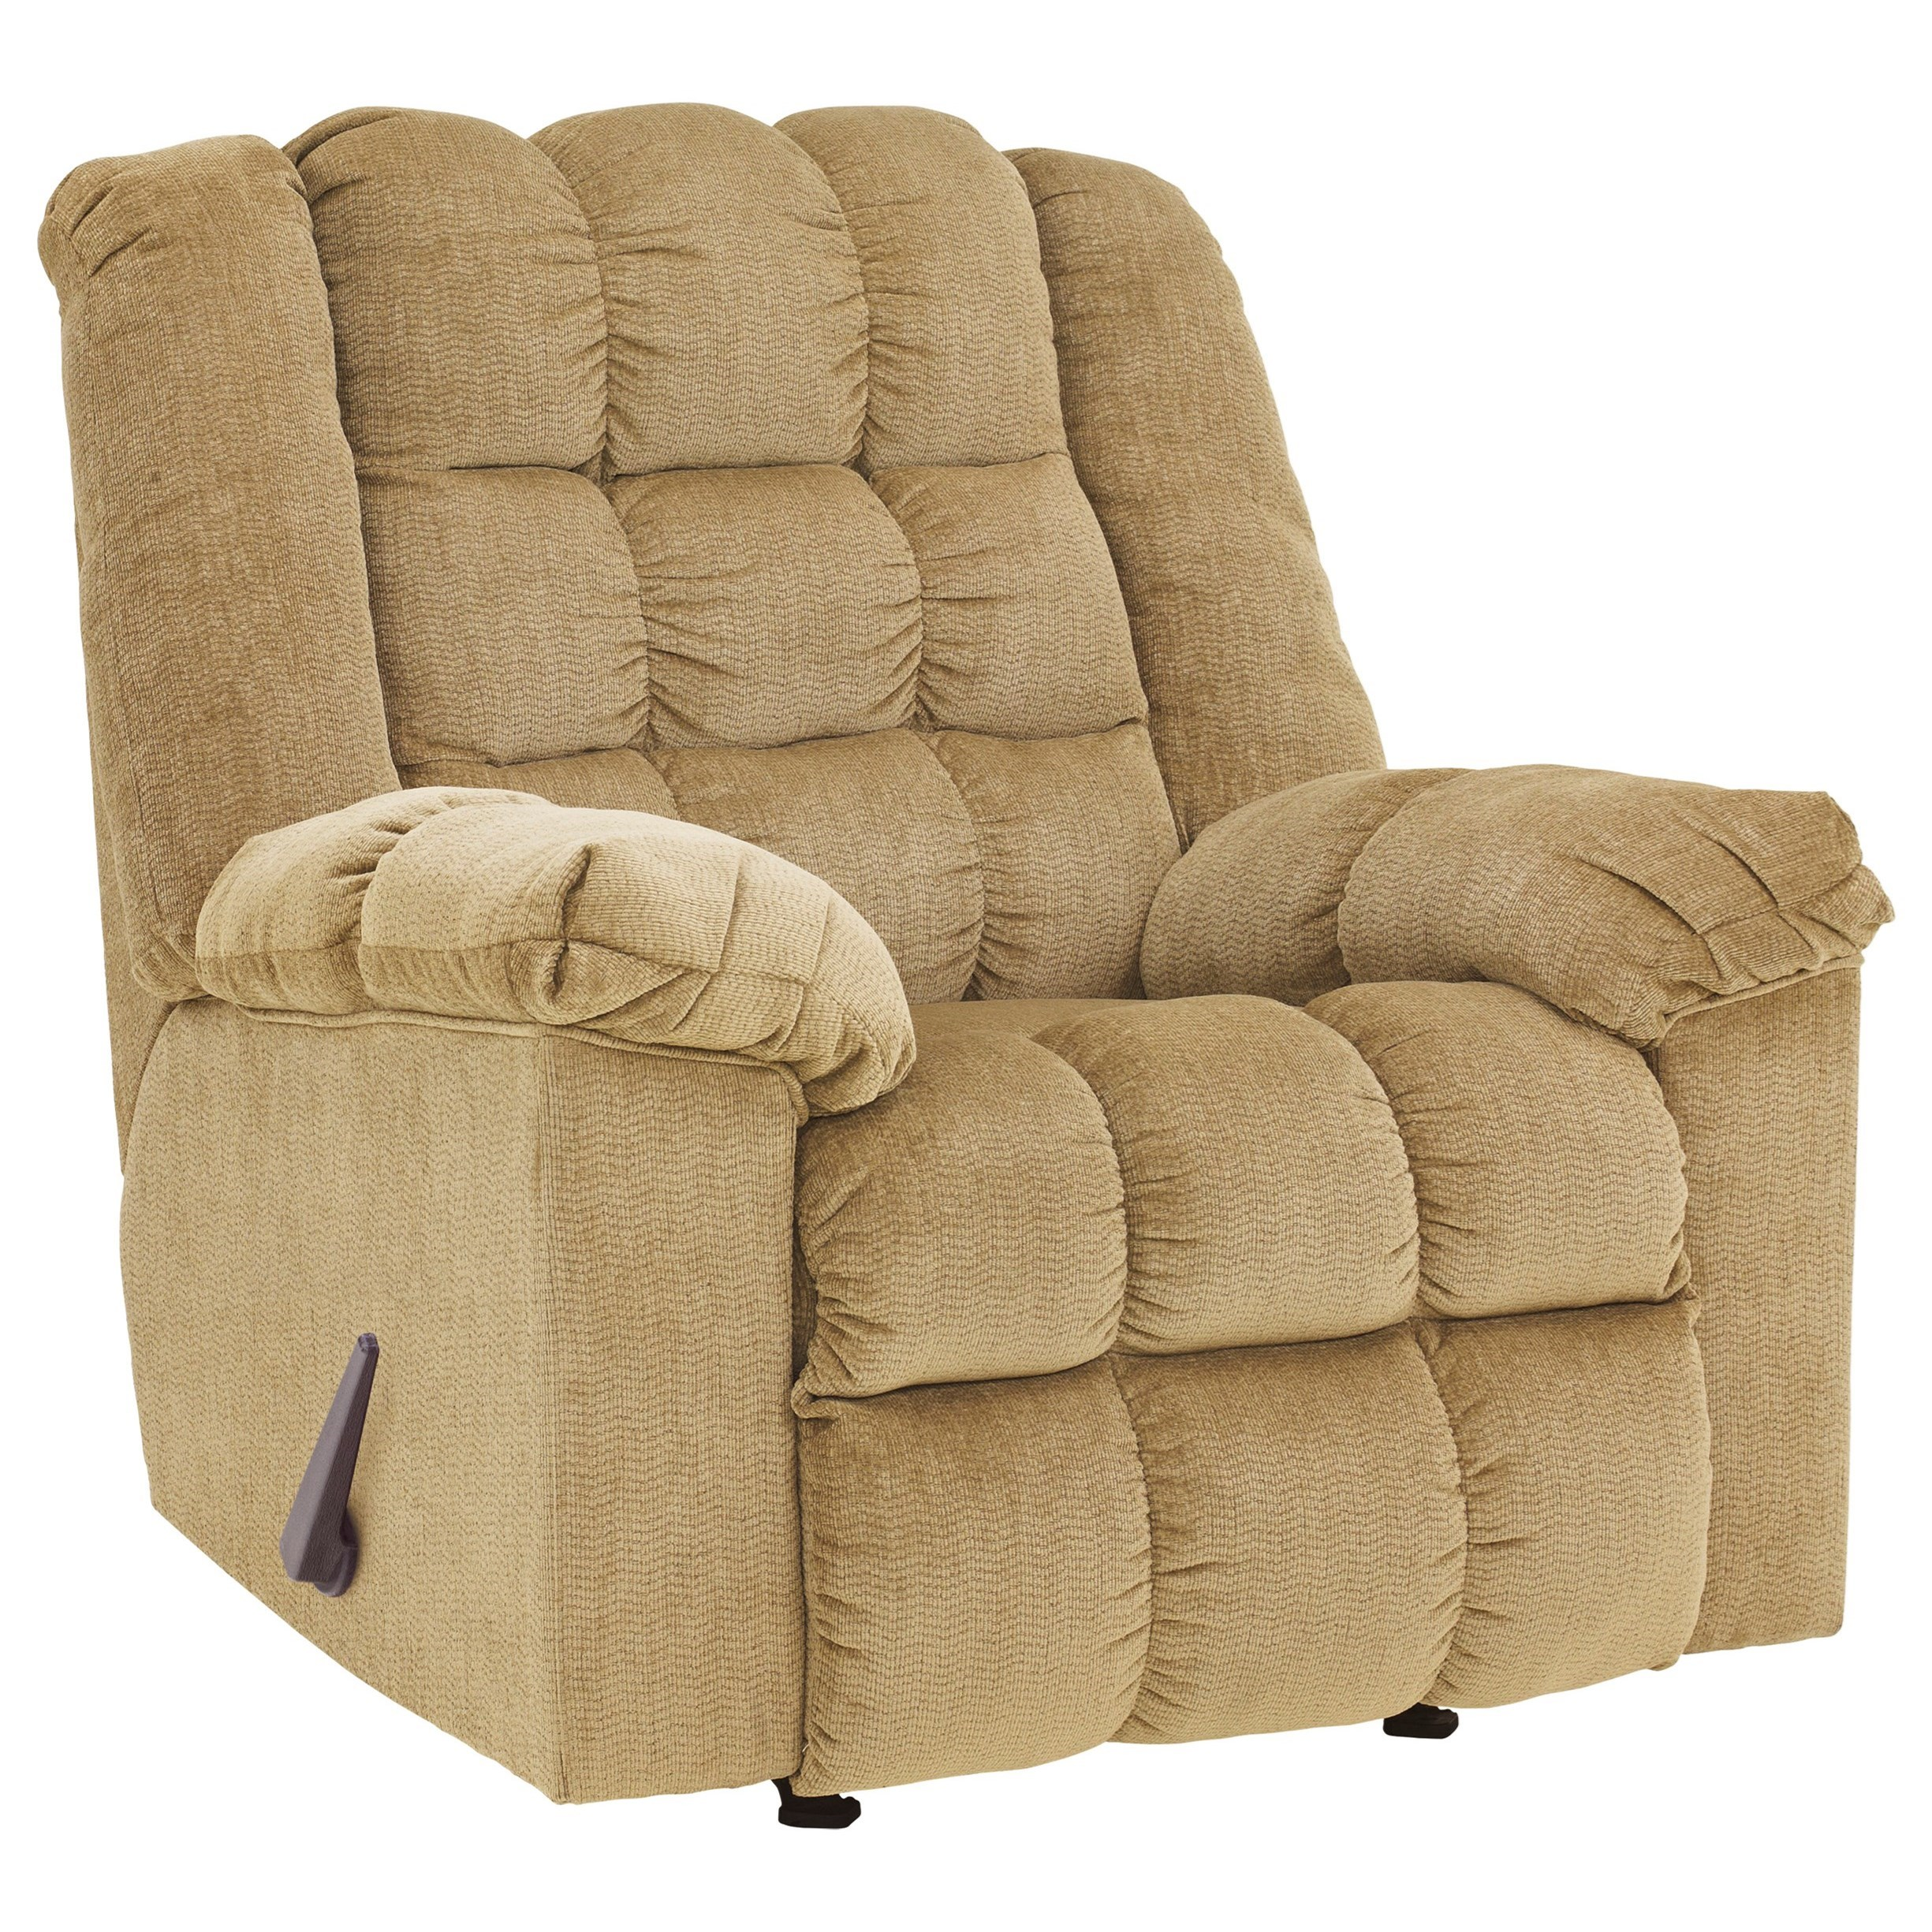 Ludden - Sand Rocker Recliner by Signature Design by Ashley at Northeast Factory Direct